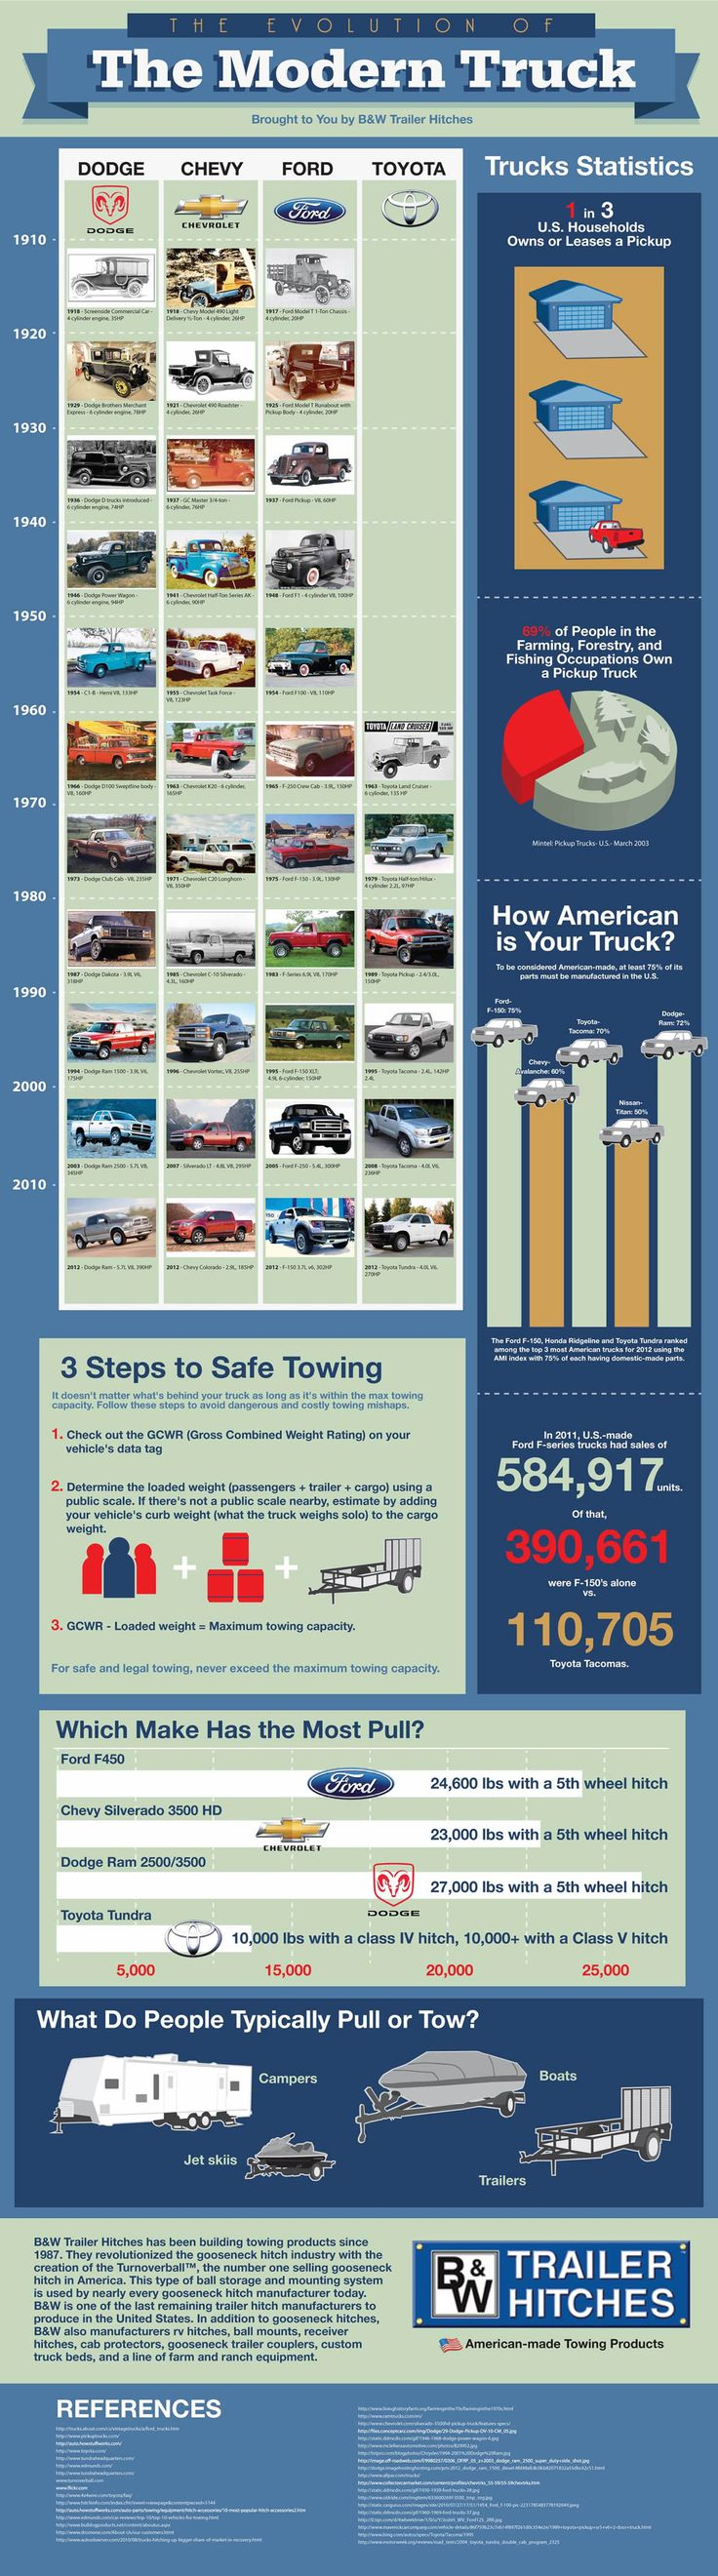 the-modern-truck-large Toyota Trucks rank almost as high as Ford and Dodge for % made in America!